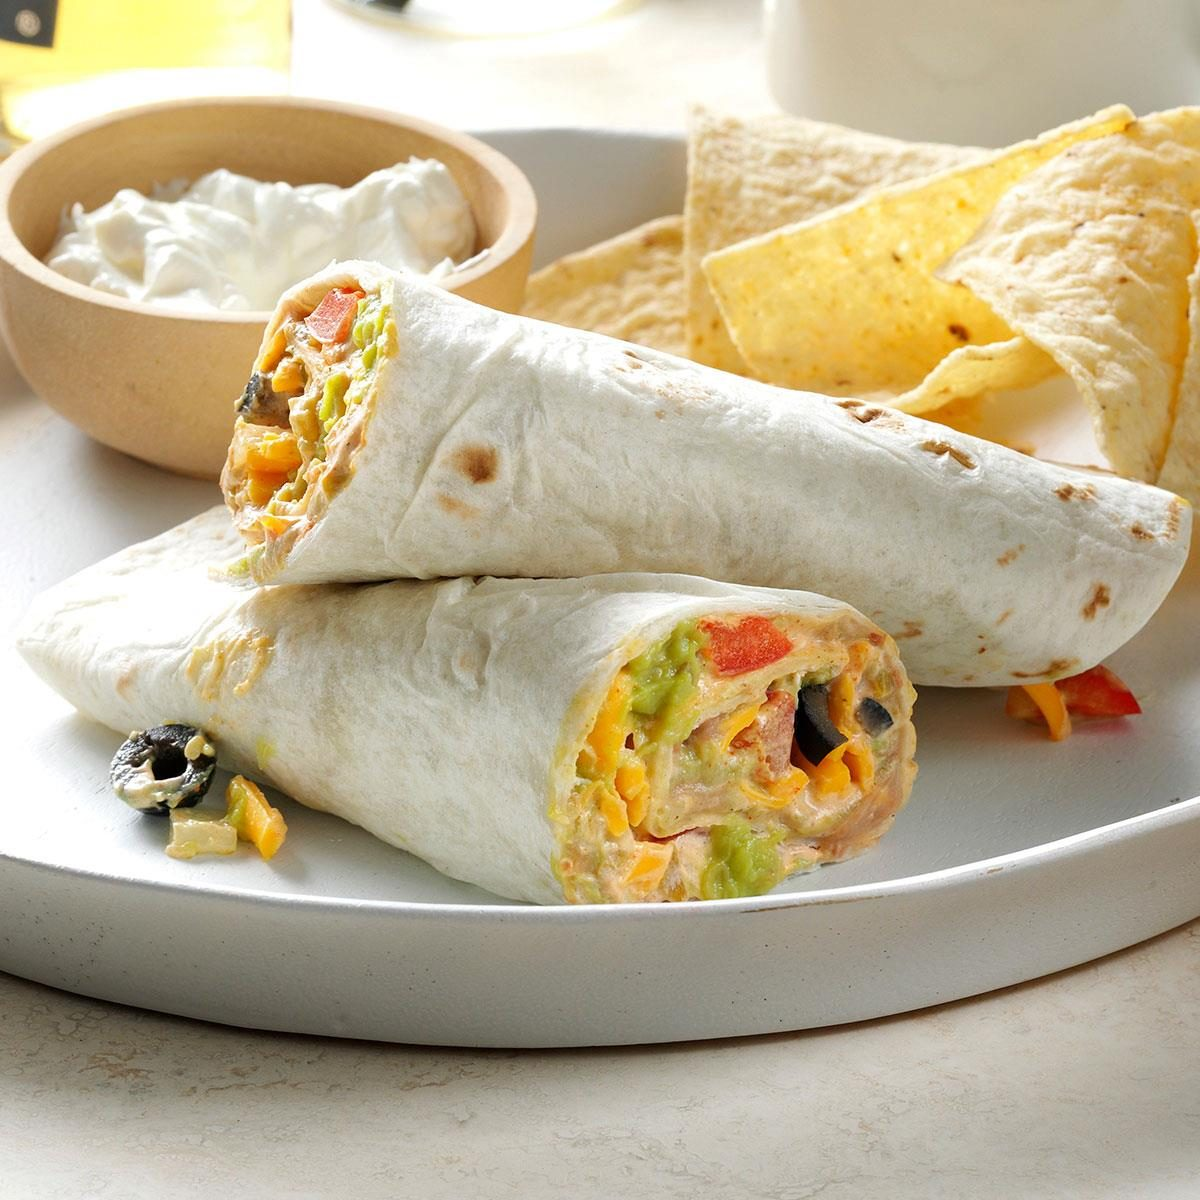 Middle School Age: Quick Taco Wraps